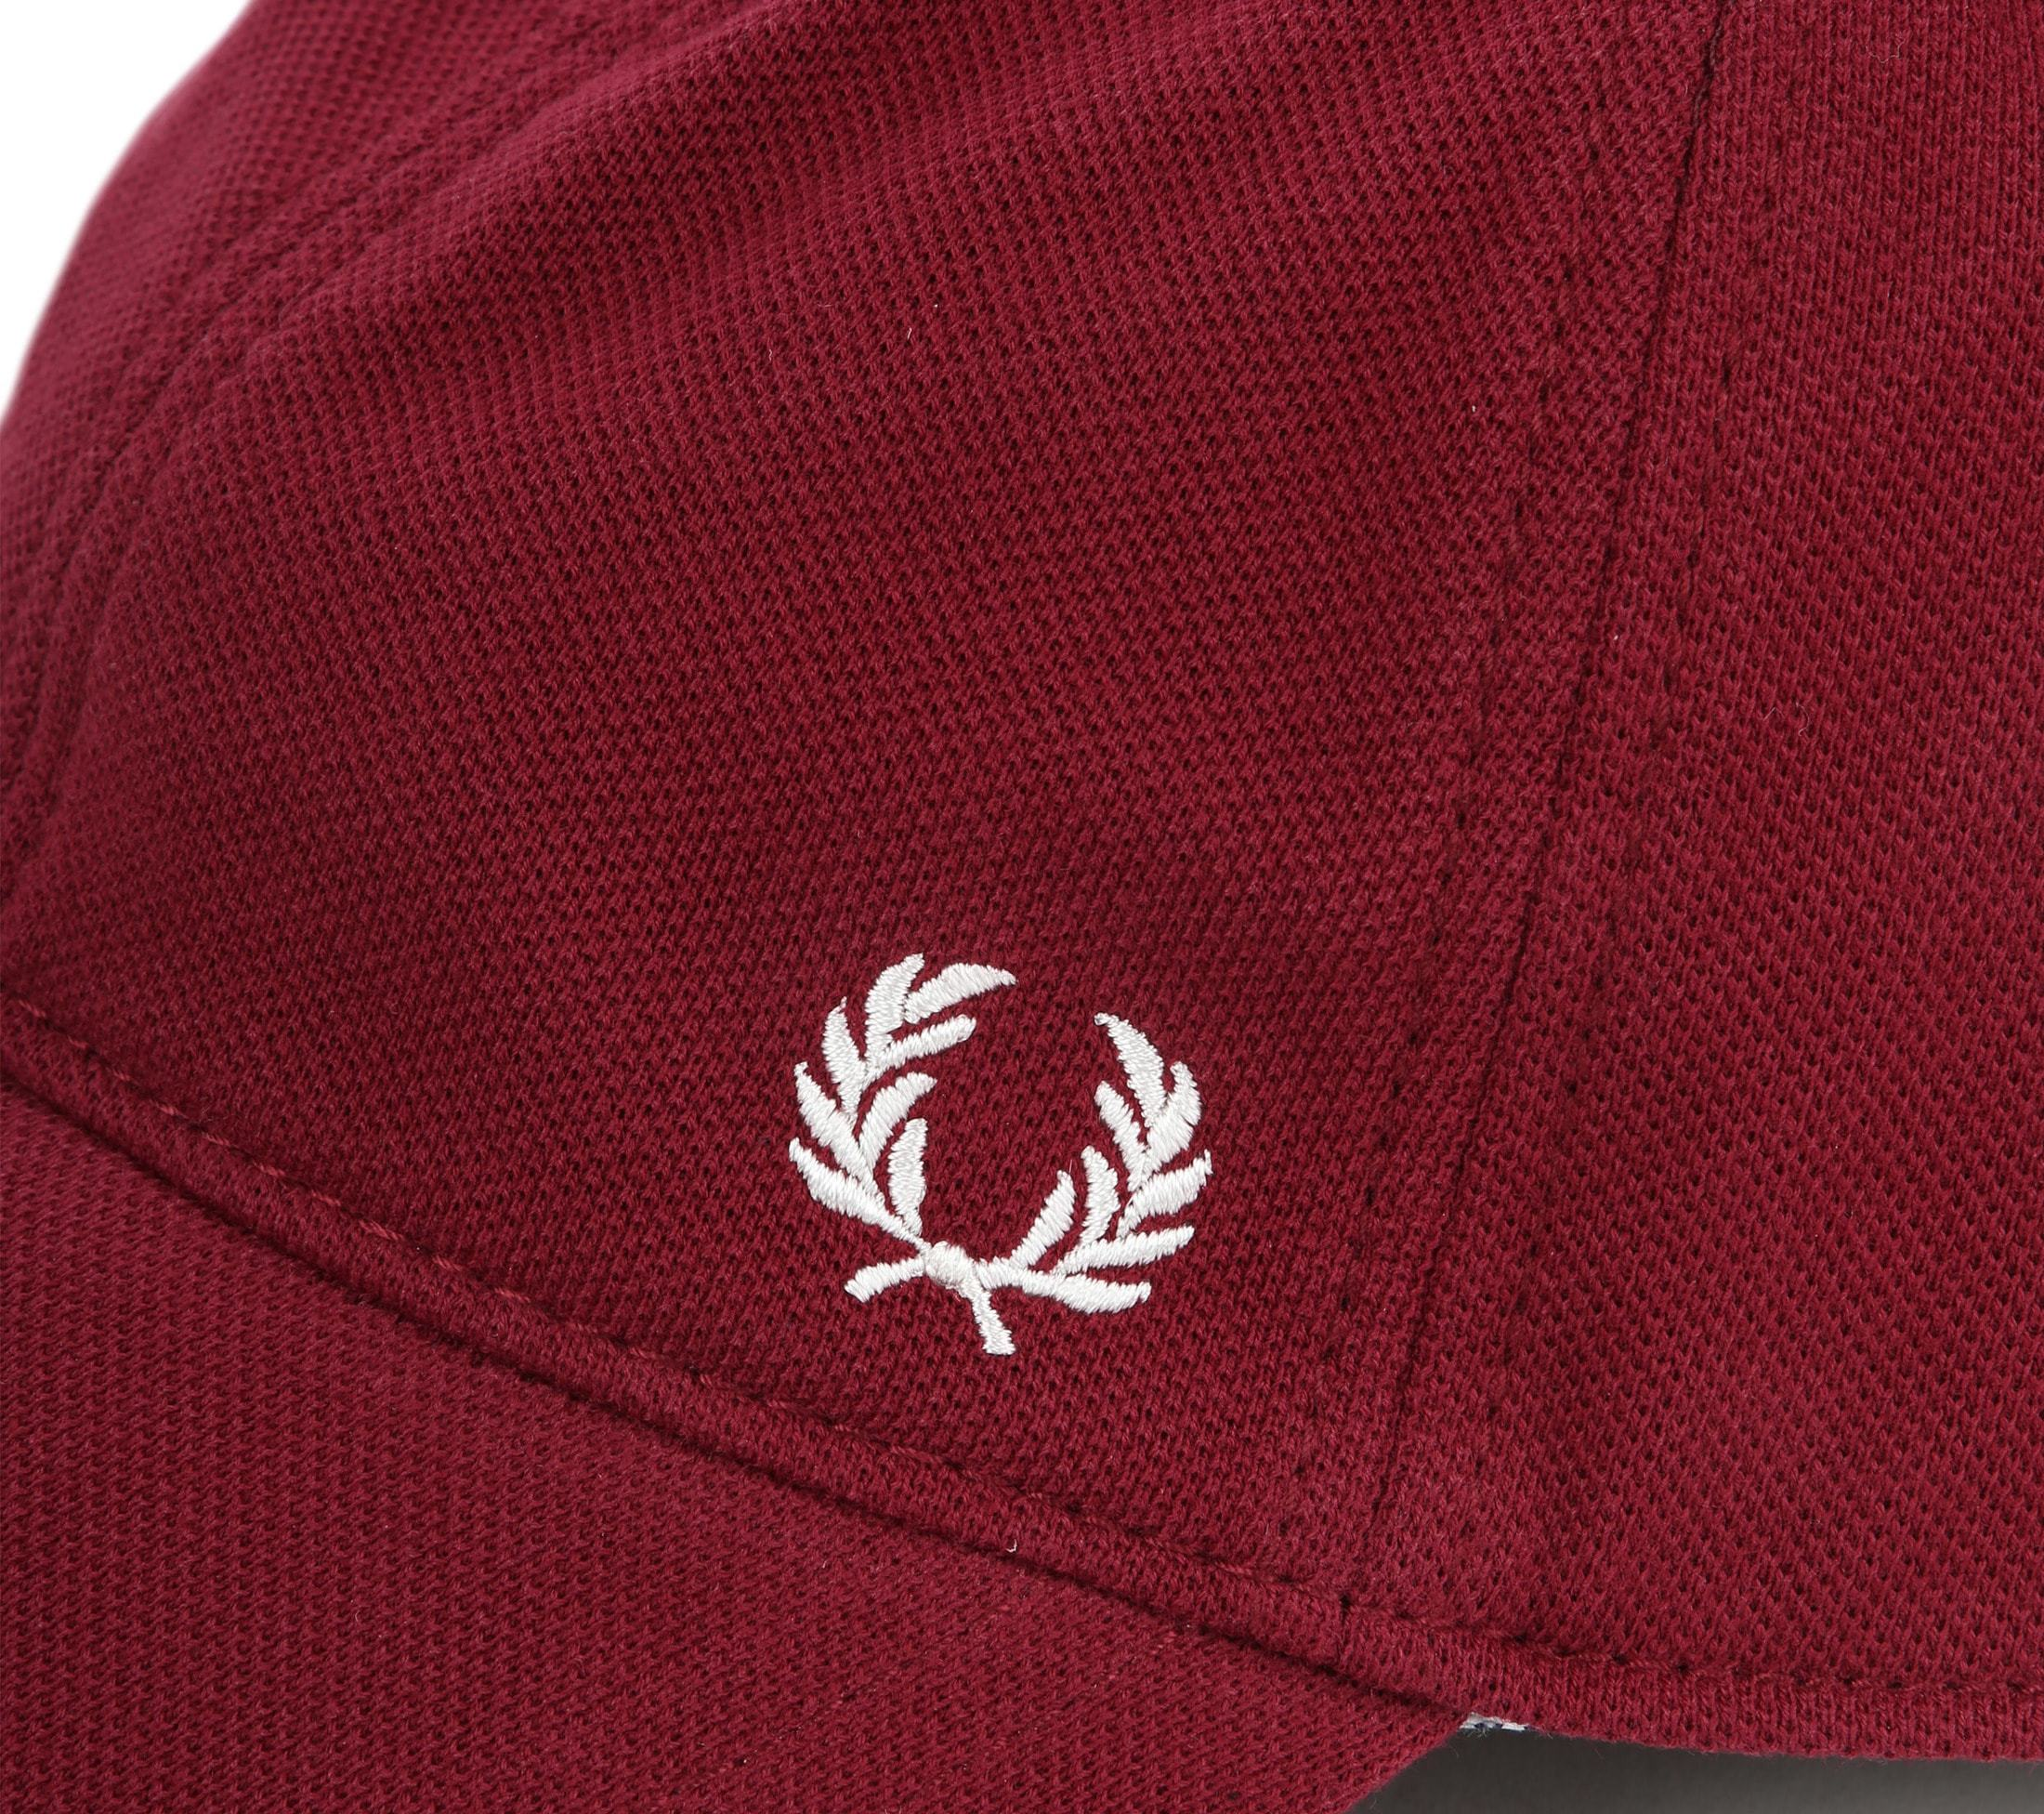 Fred Perry A27 Kappe Bordeaux foto 1